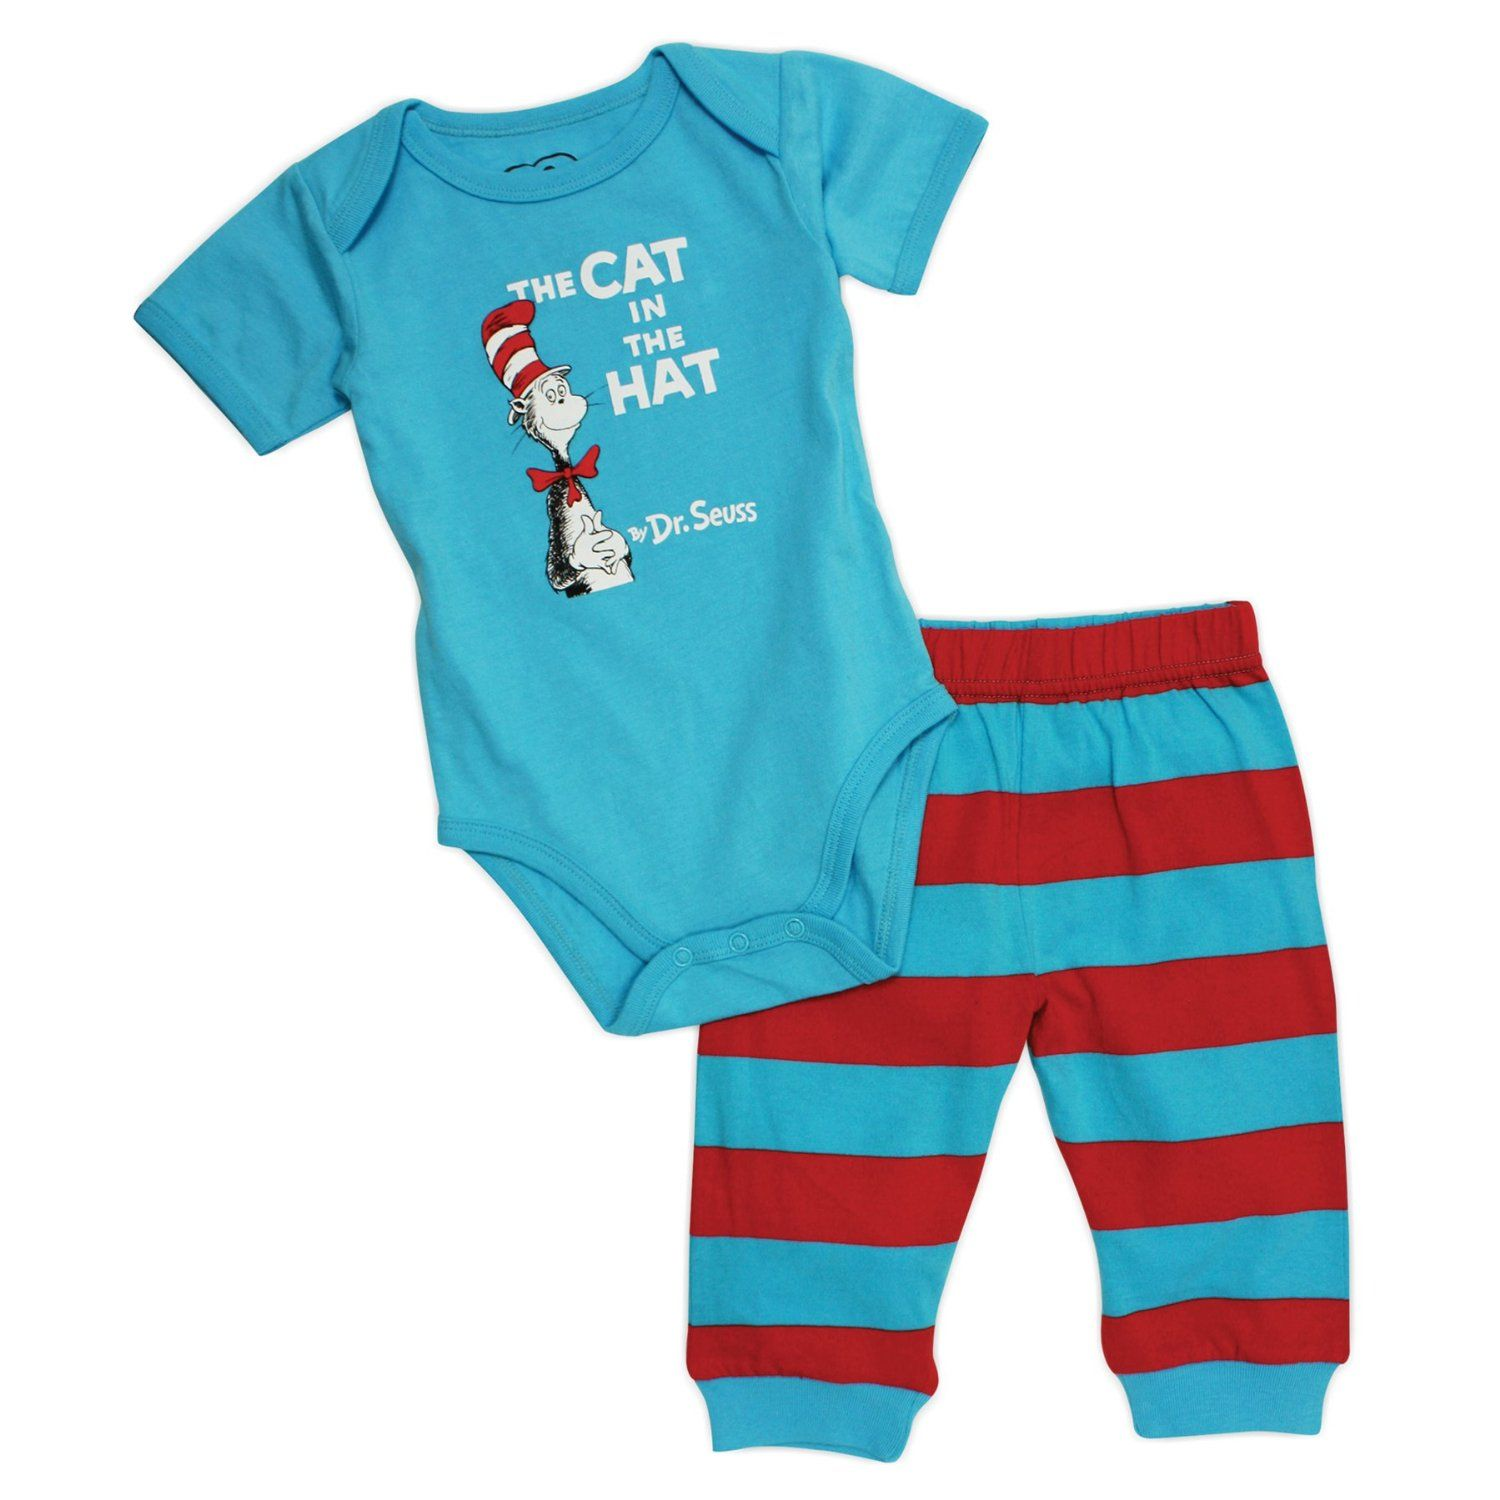 dr seuss baby clothing shoes jewelry